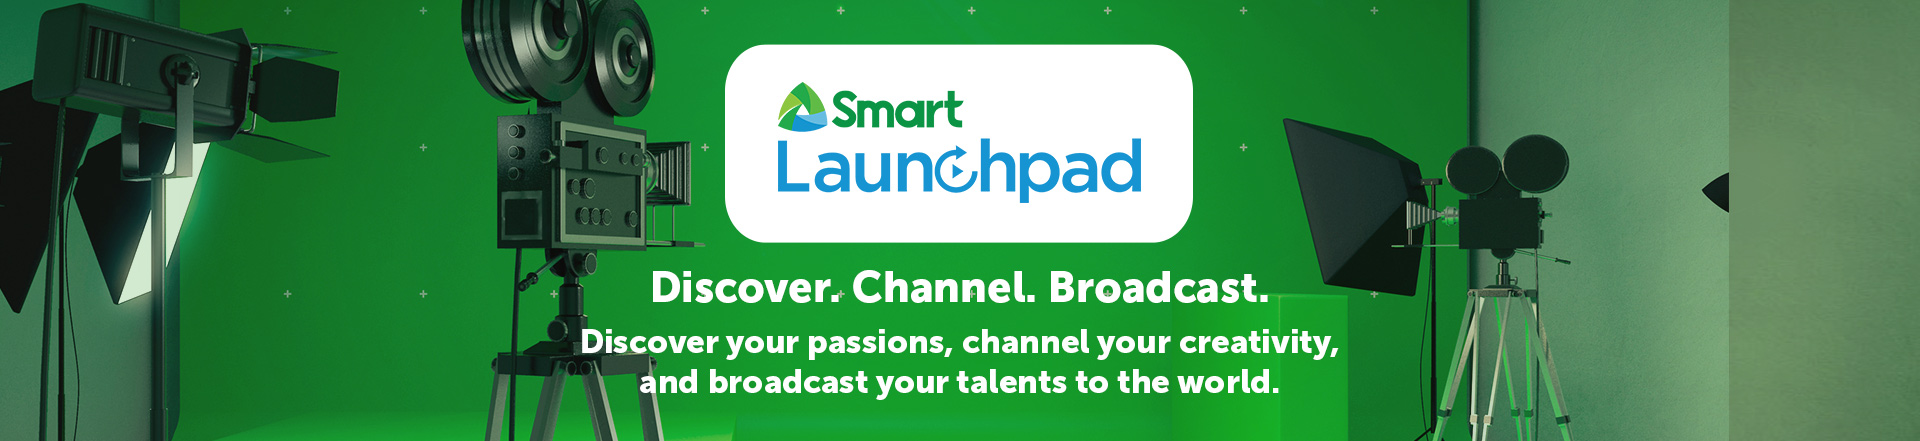 smart pages launchpad 1 - Smart Announces LaunchPad Winners!